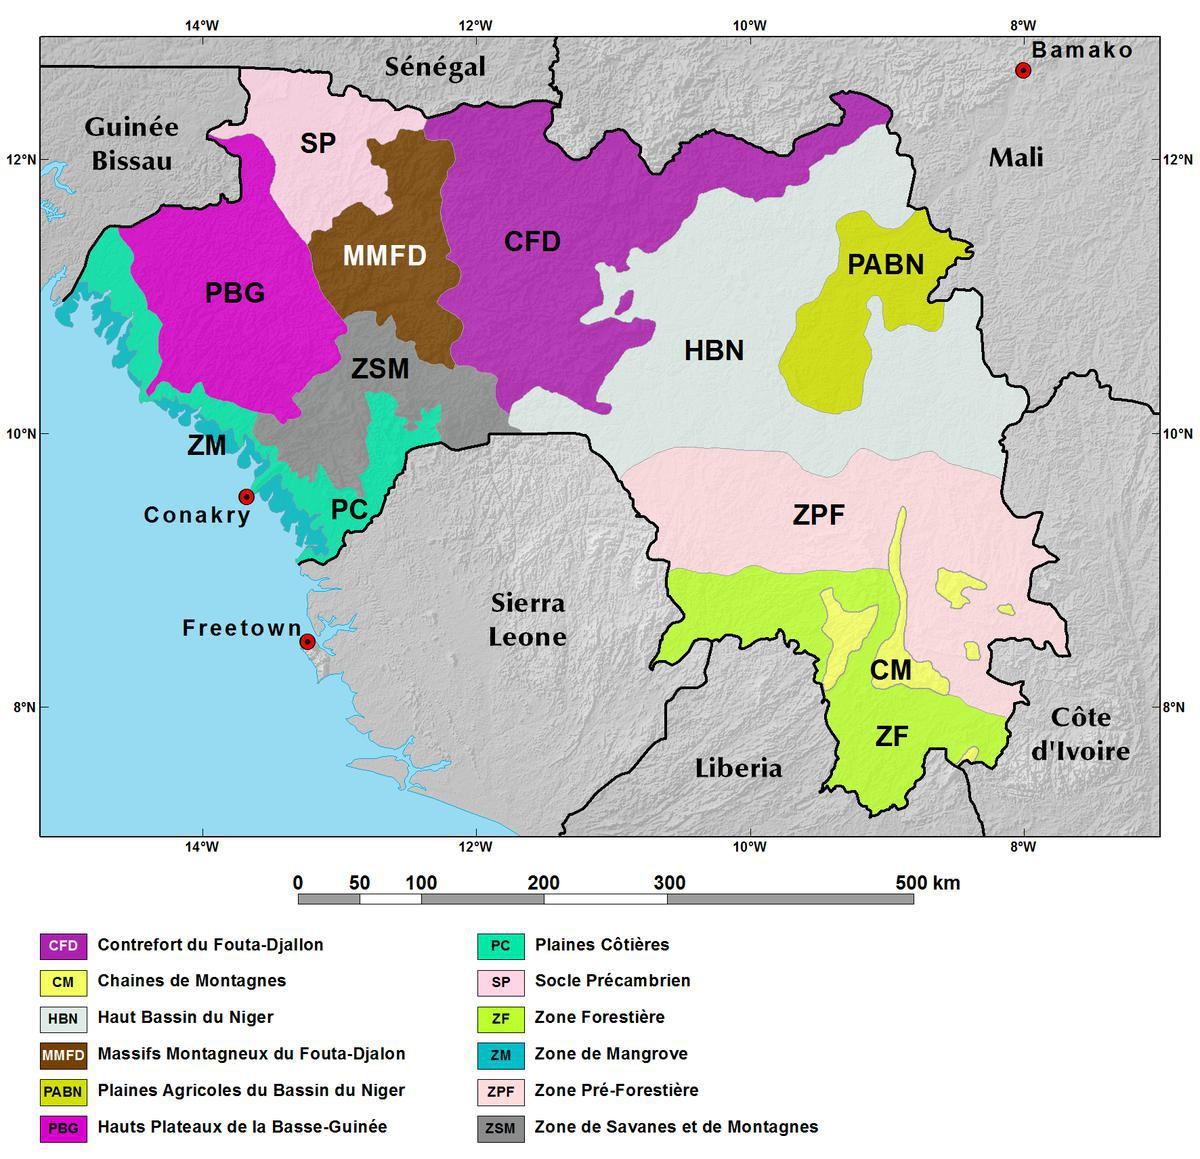 Ecoregions and Topography of Guinea West Africa